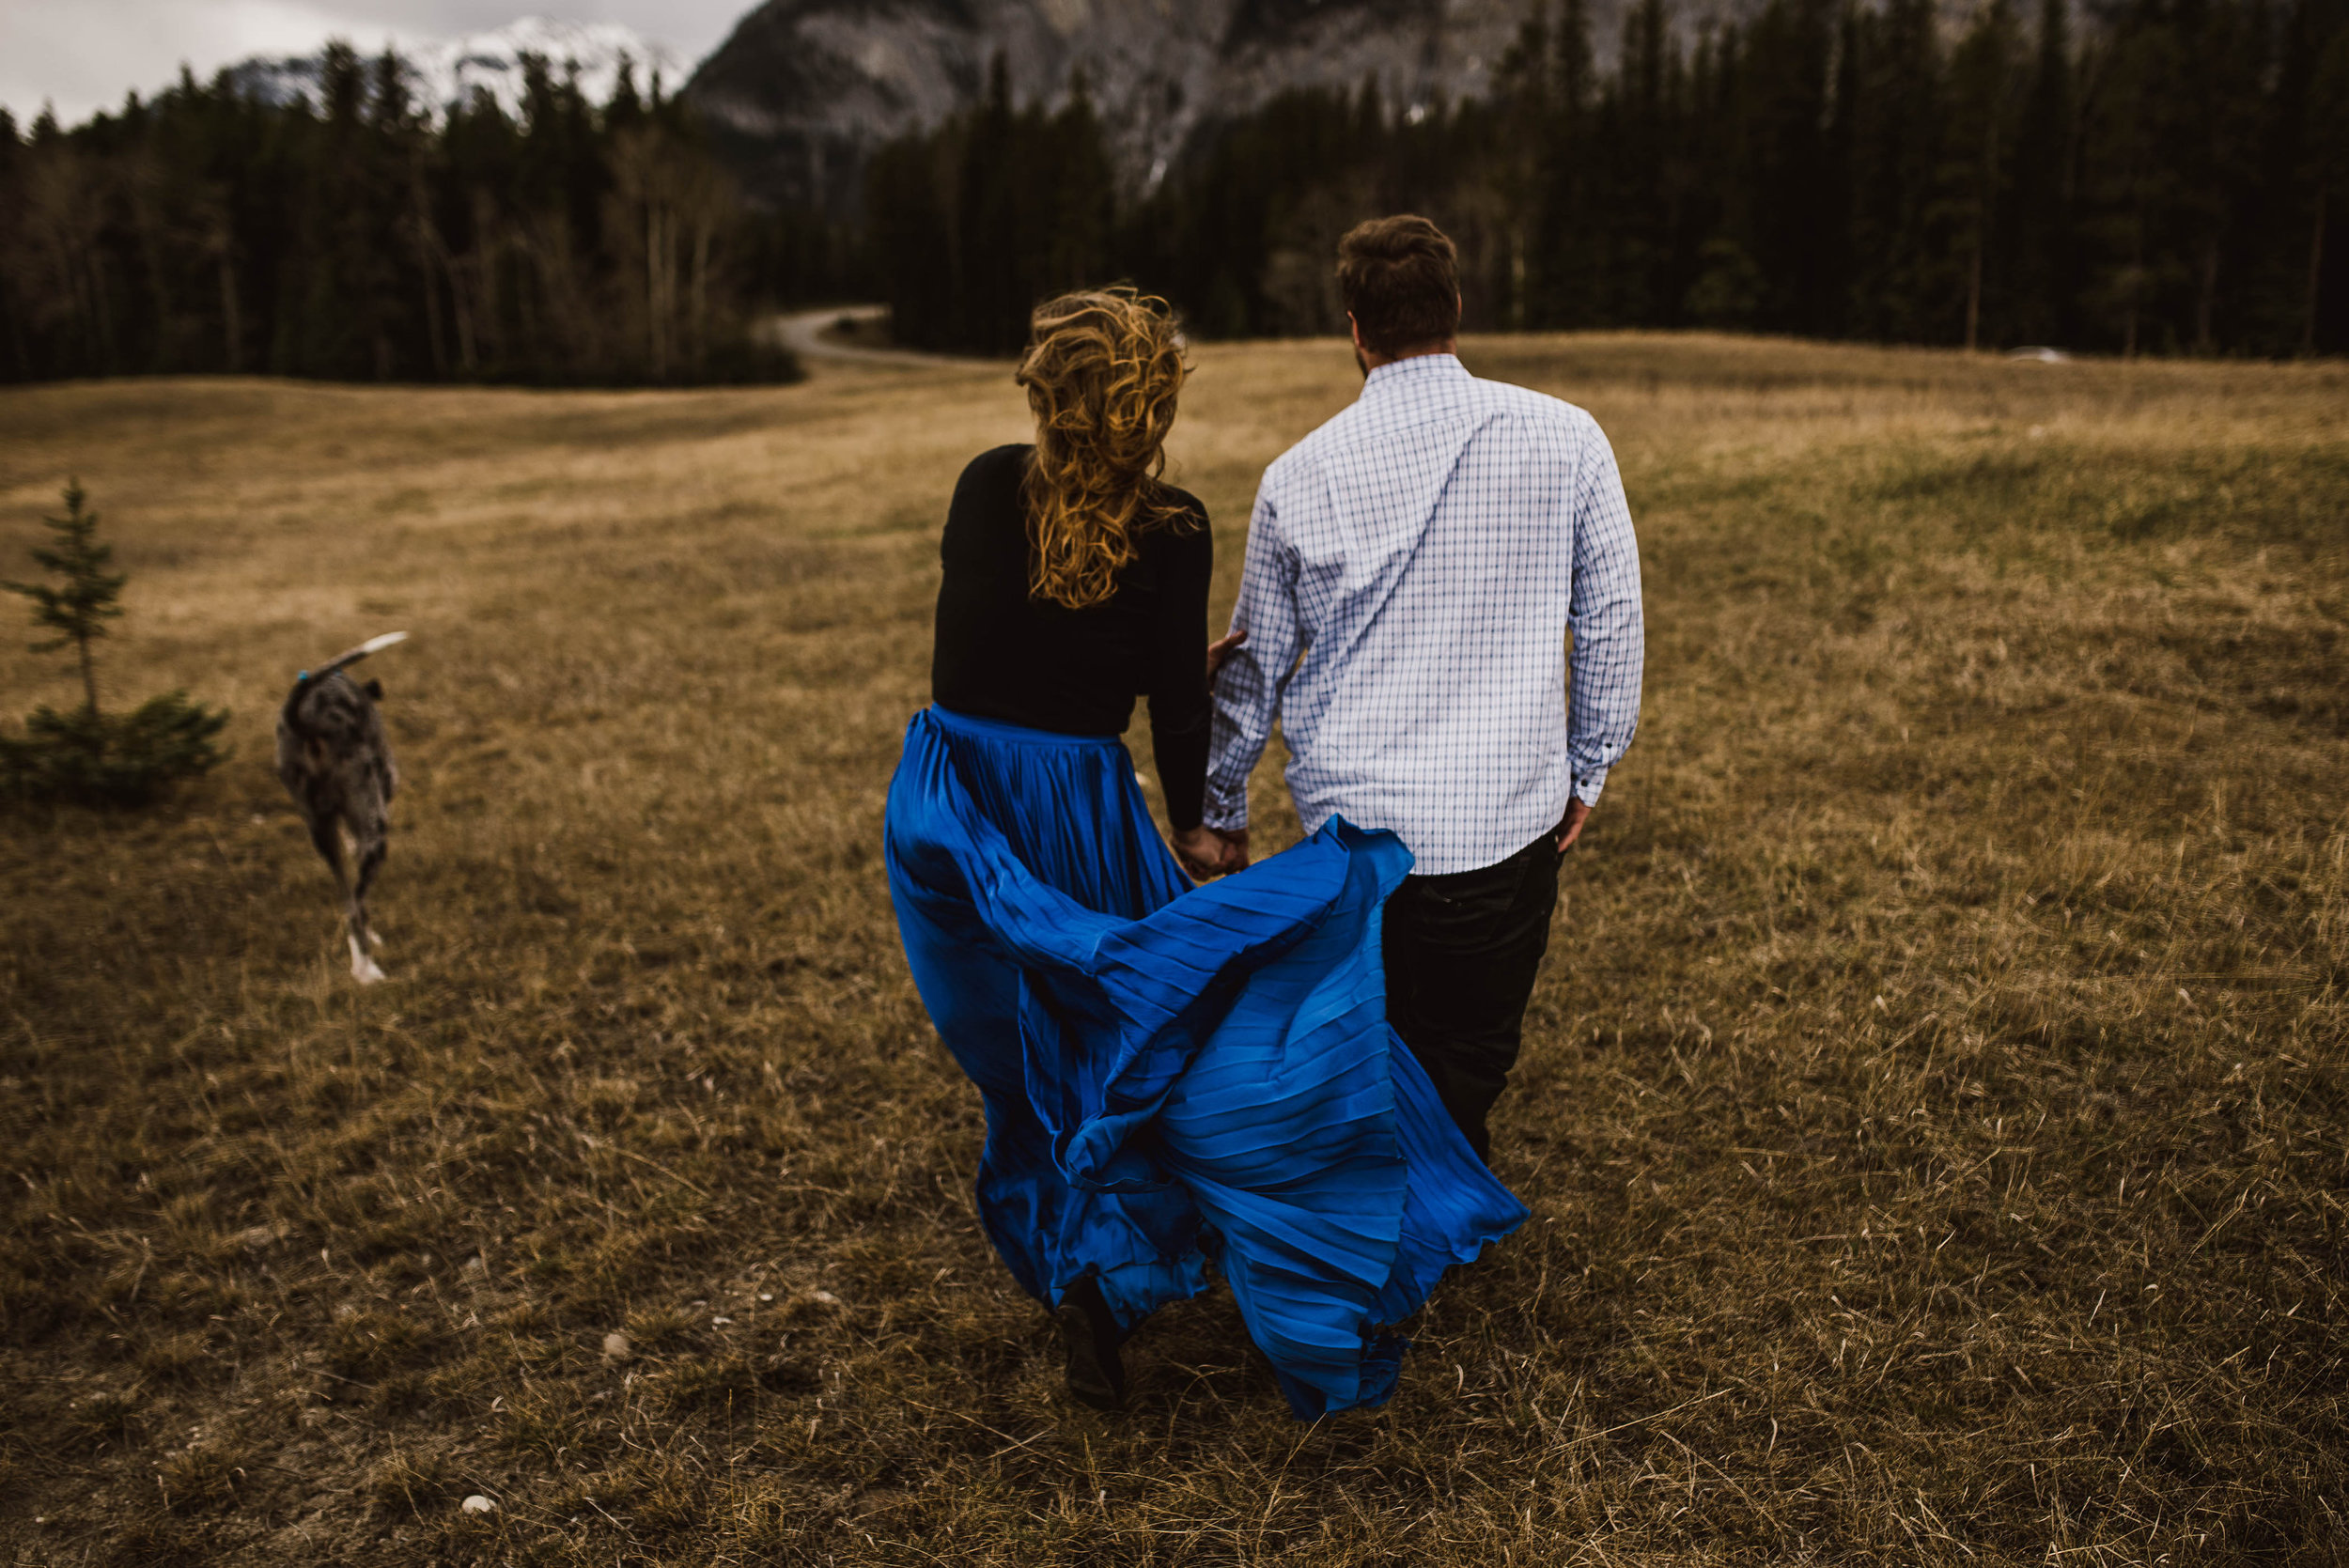 Isaiah-&-Taylor-Photography---Matt-&-Lindsay-Engagement-061.jpg